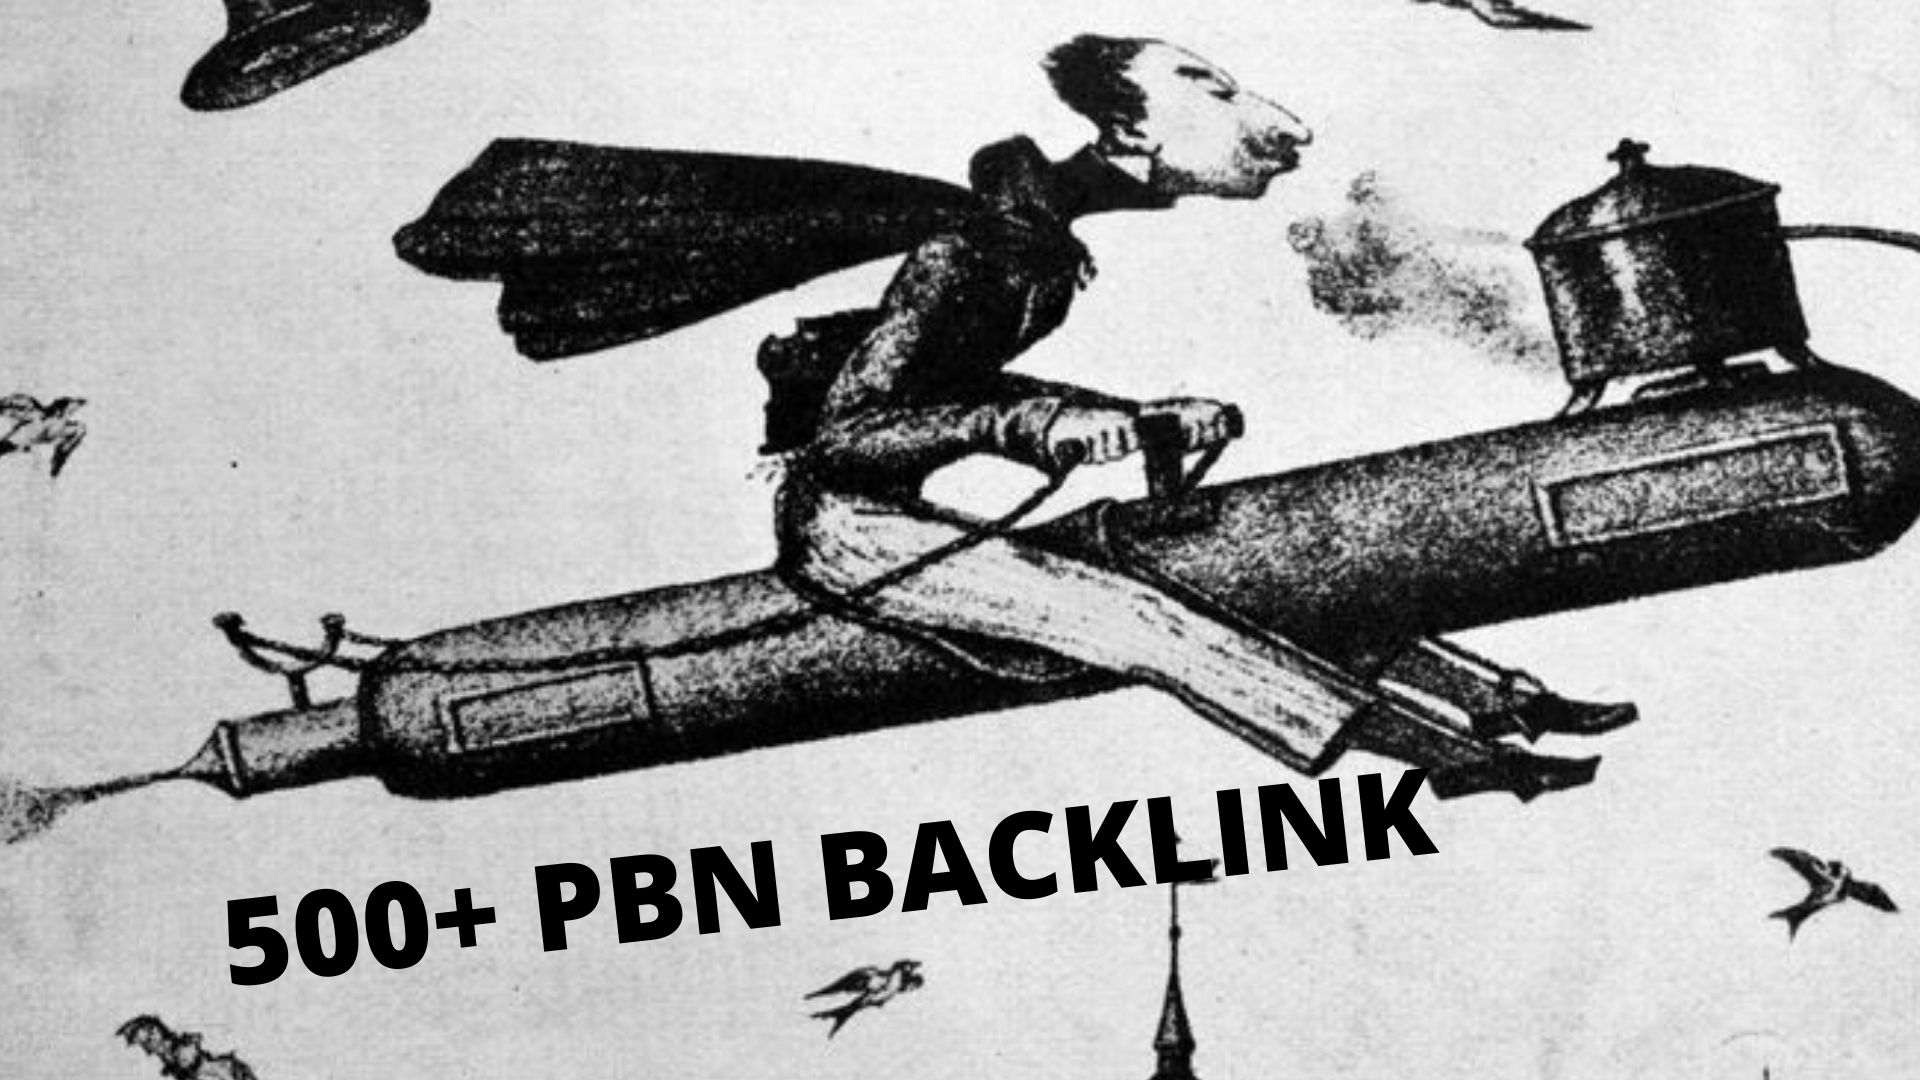 Get powerful 500+ pbn backlink with high DA/PA on your homepage with a unique website Perfect